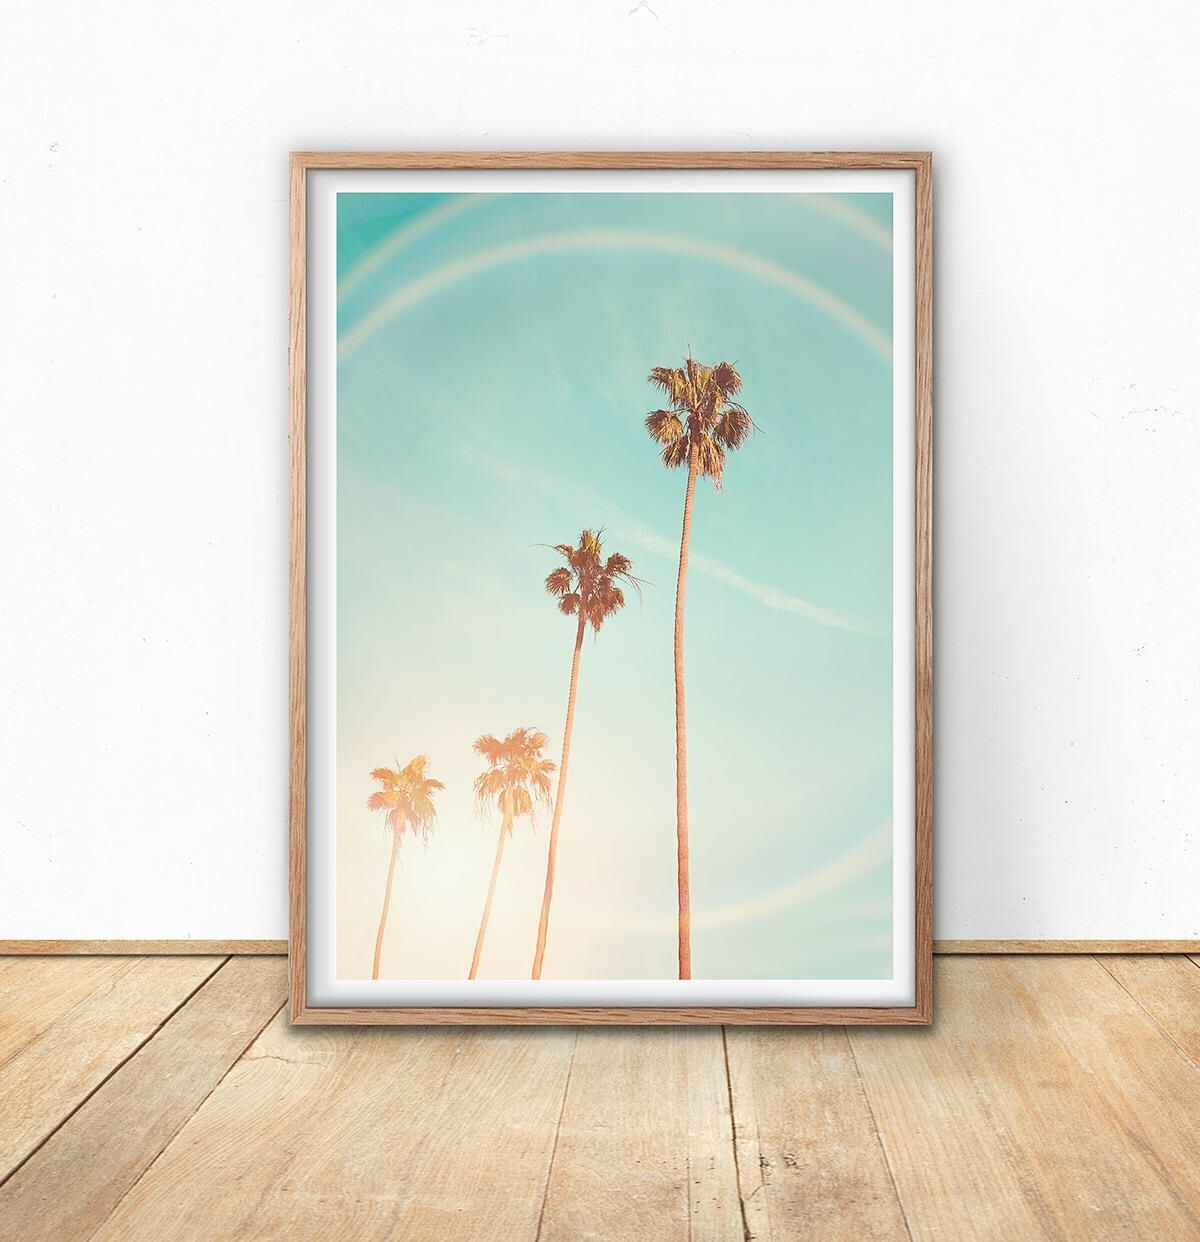 Palm Trees Print – California Wall Art, Retro Beach Print, Instant Within Best And Newest California Wall Art (View 14 of 20)